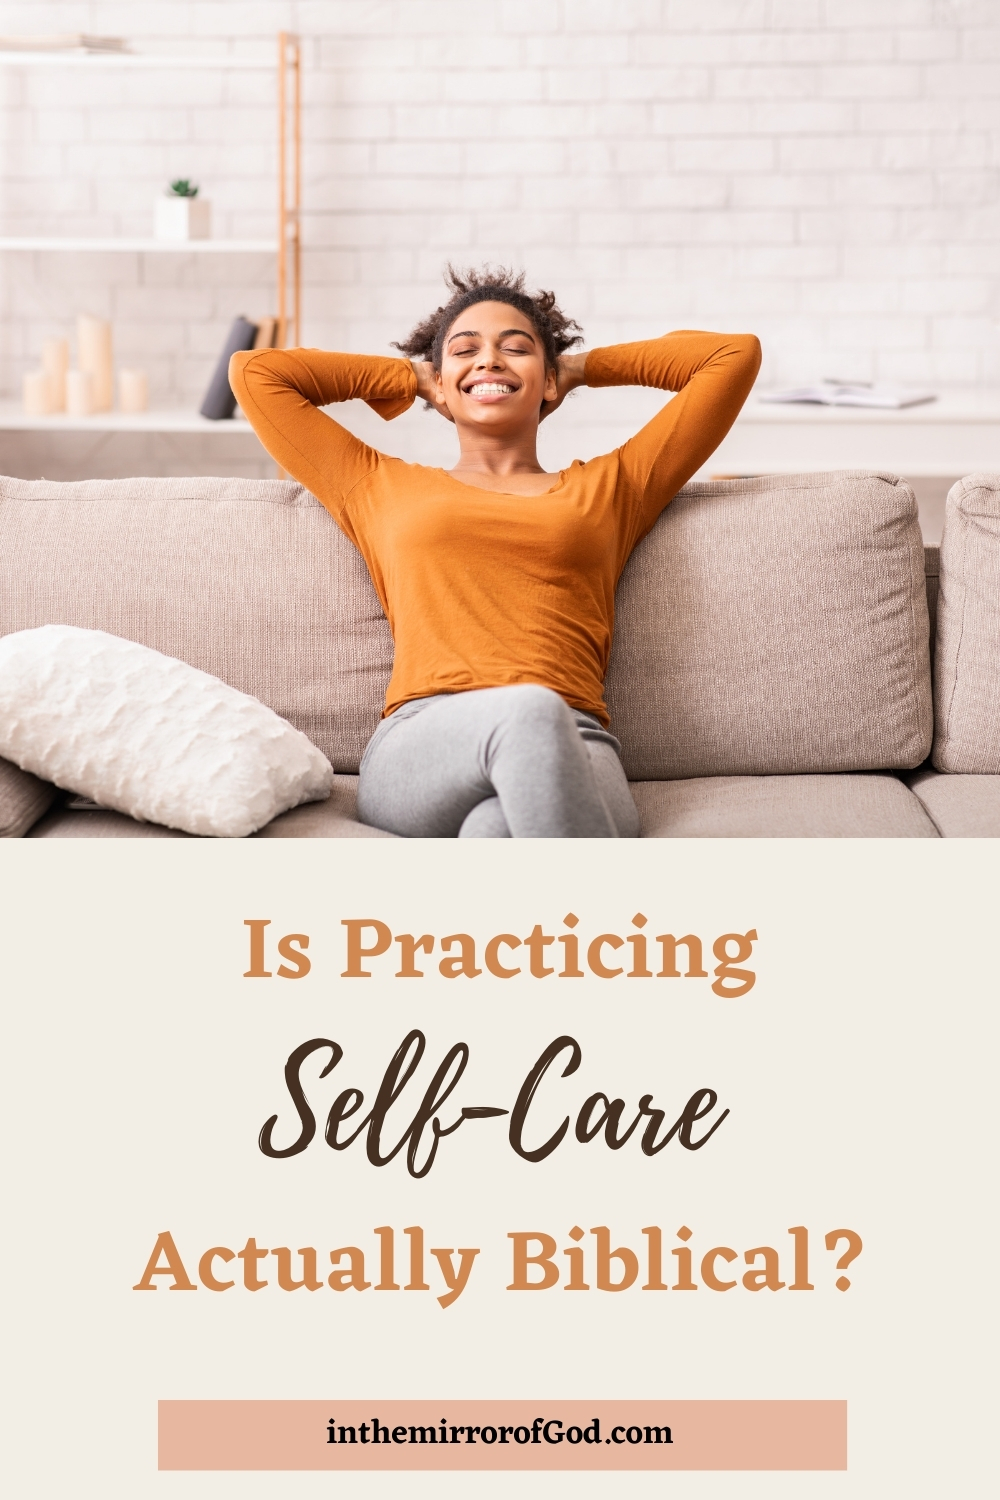 Is Practicing Self-Care Actually Biblical?